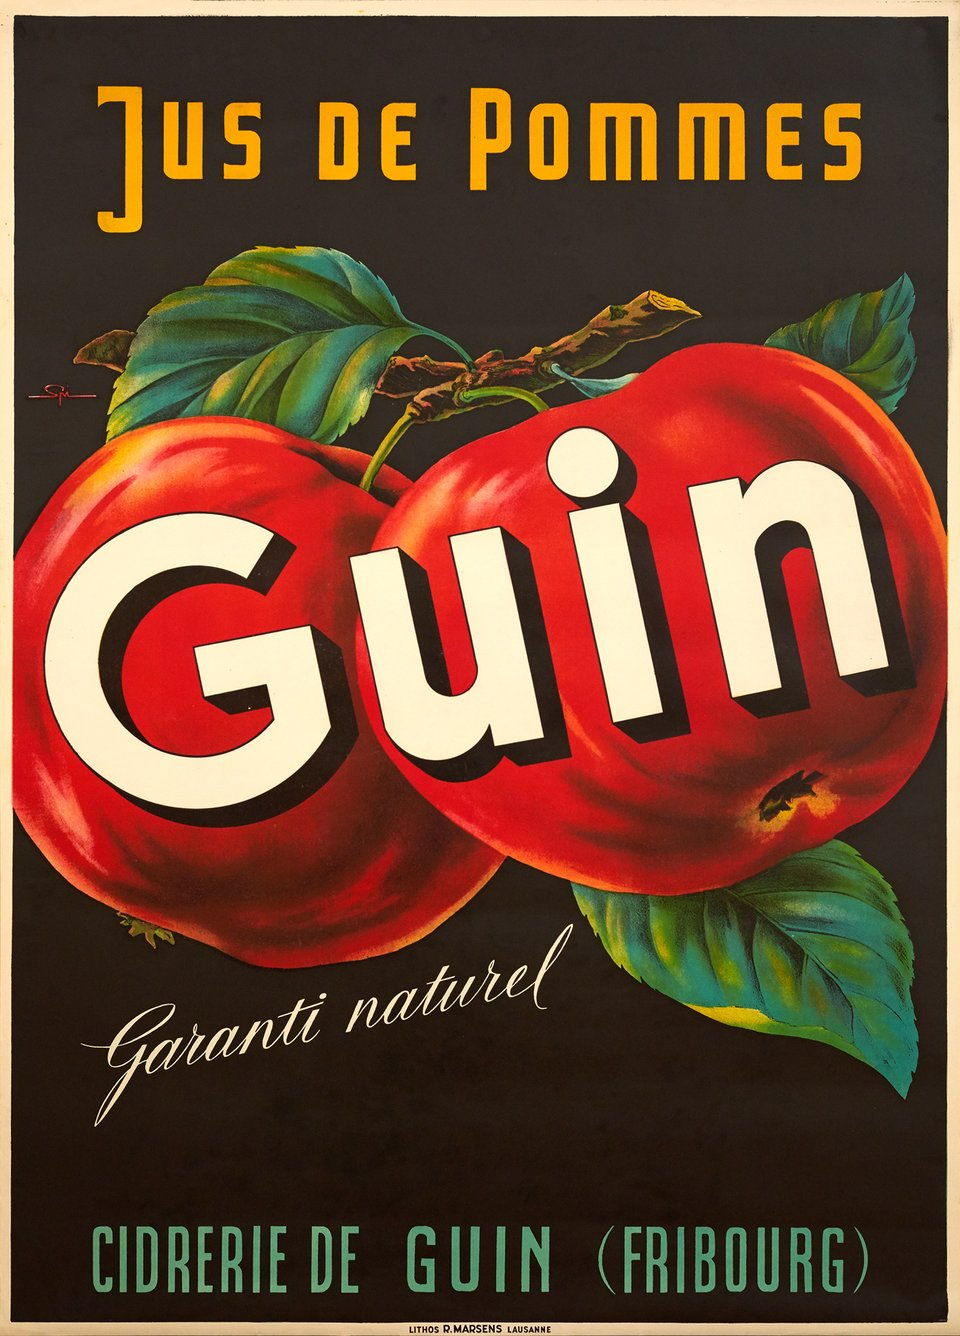 Guin, Jus de pommes – Affiche ancienne – Walther SPINNER – 1935